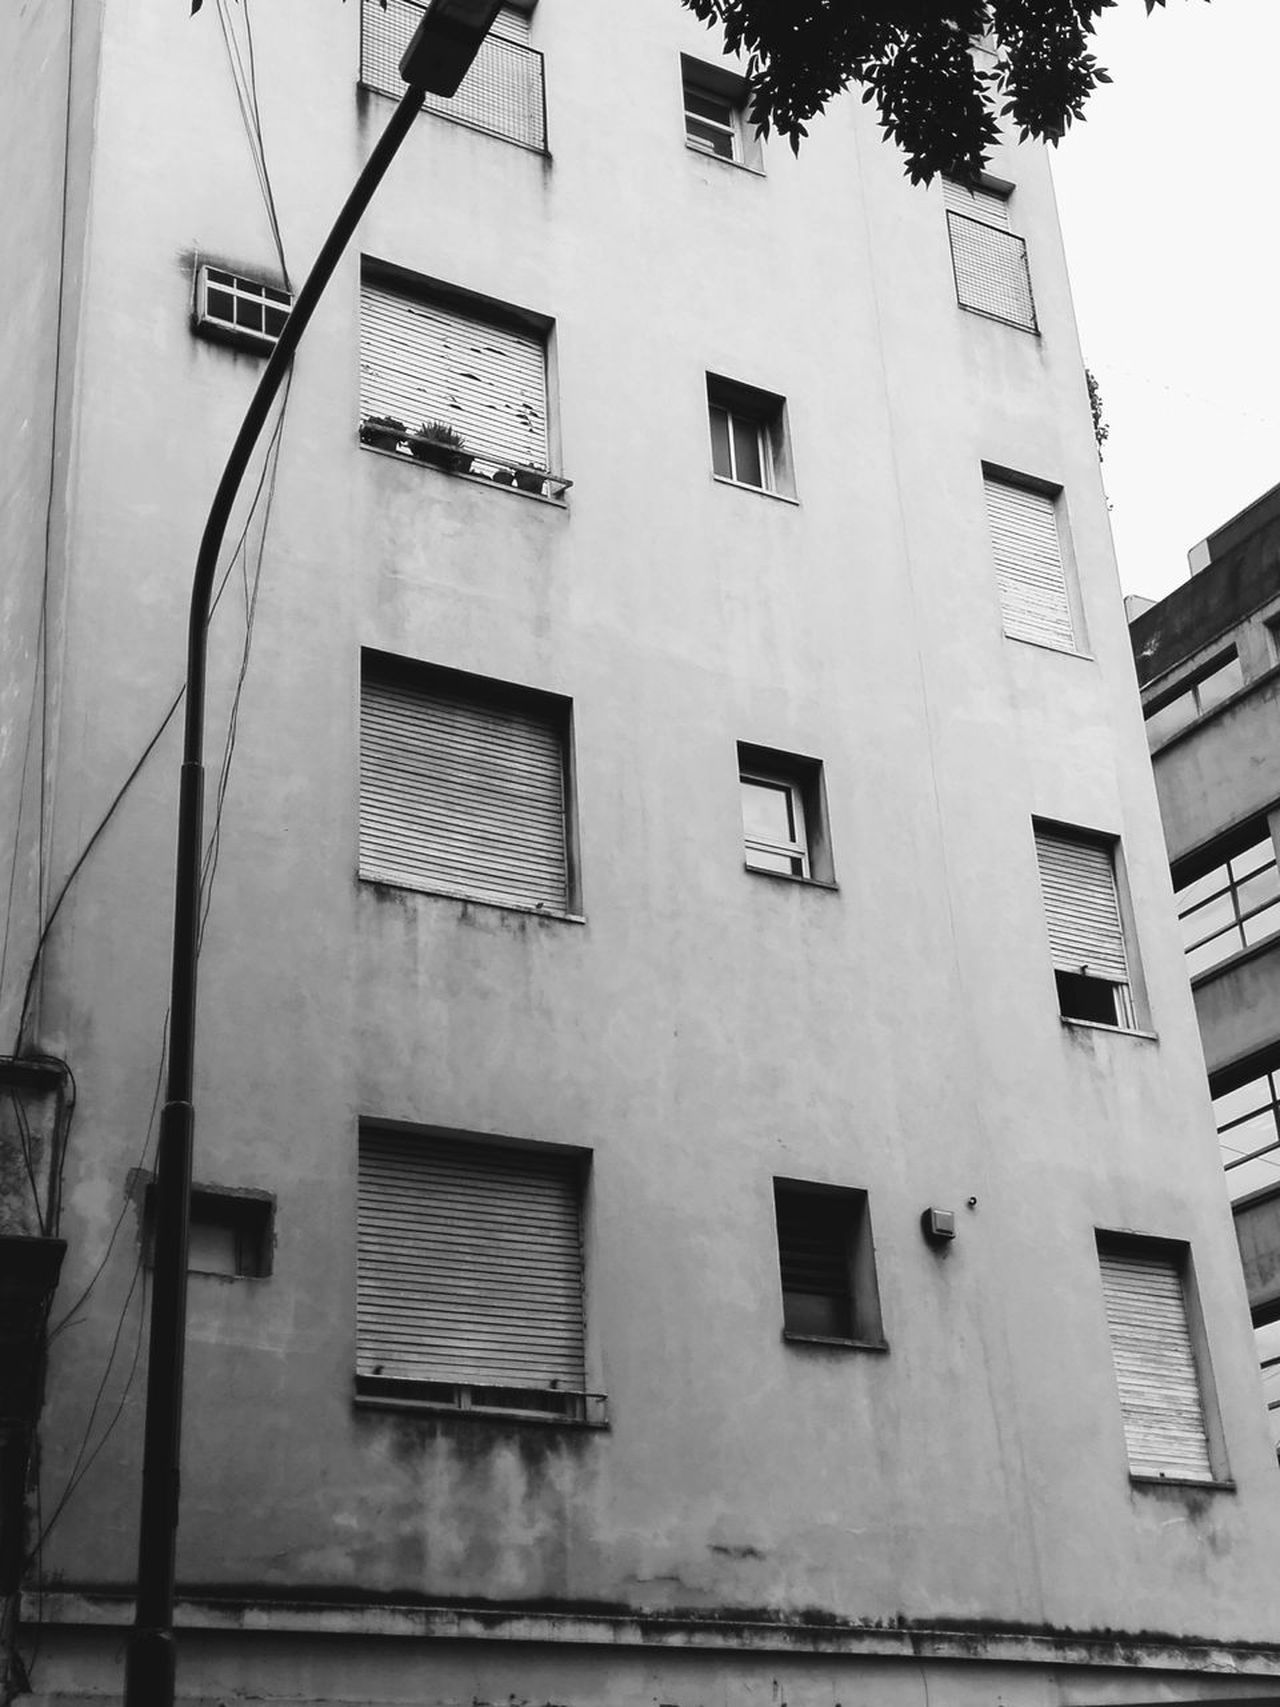 Urban Exploration Cityexplorer City BW_photography Building Exterior Architecture Built Structure Low Angle View No People Outdoors Day City Sky